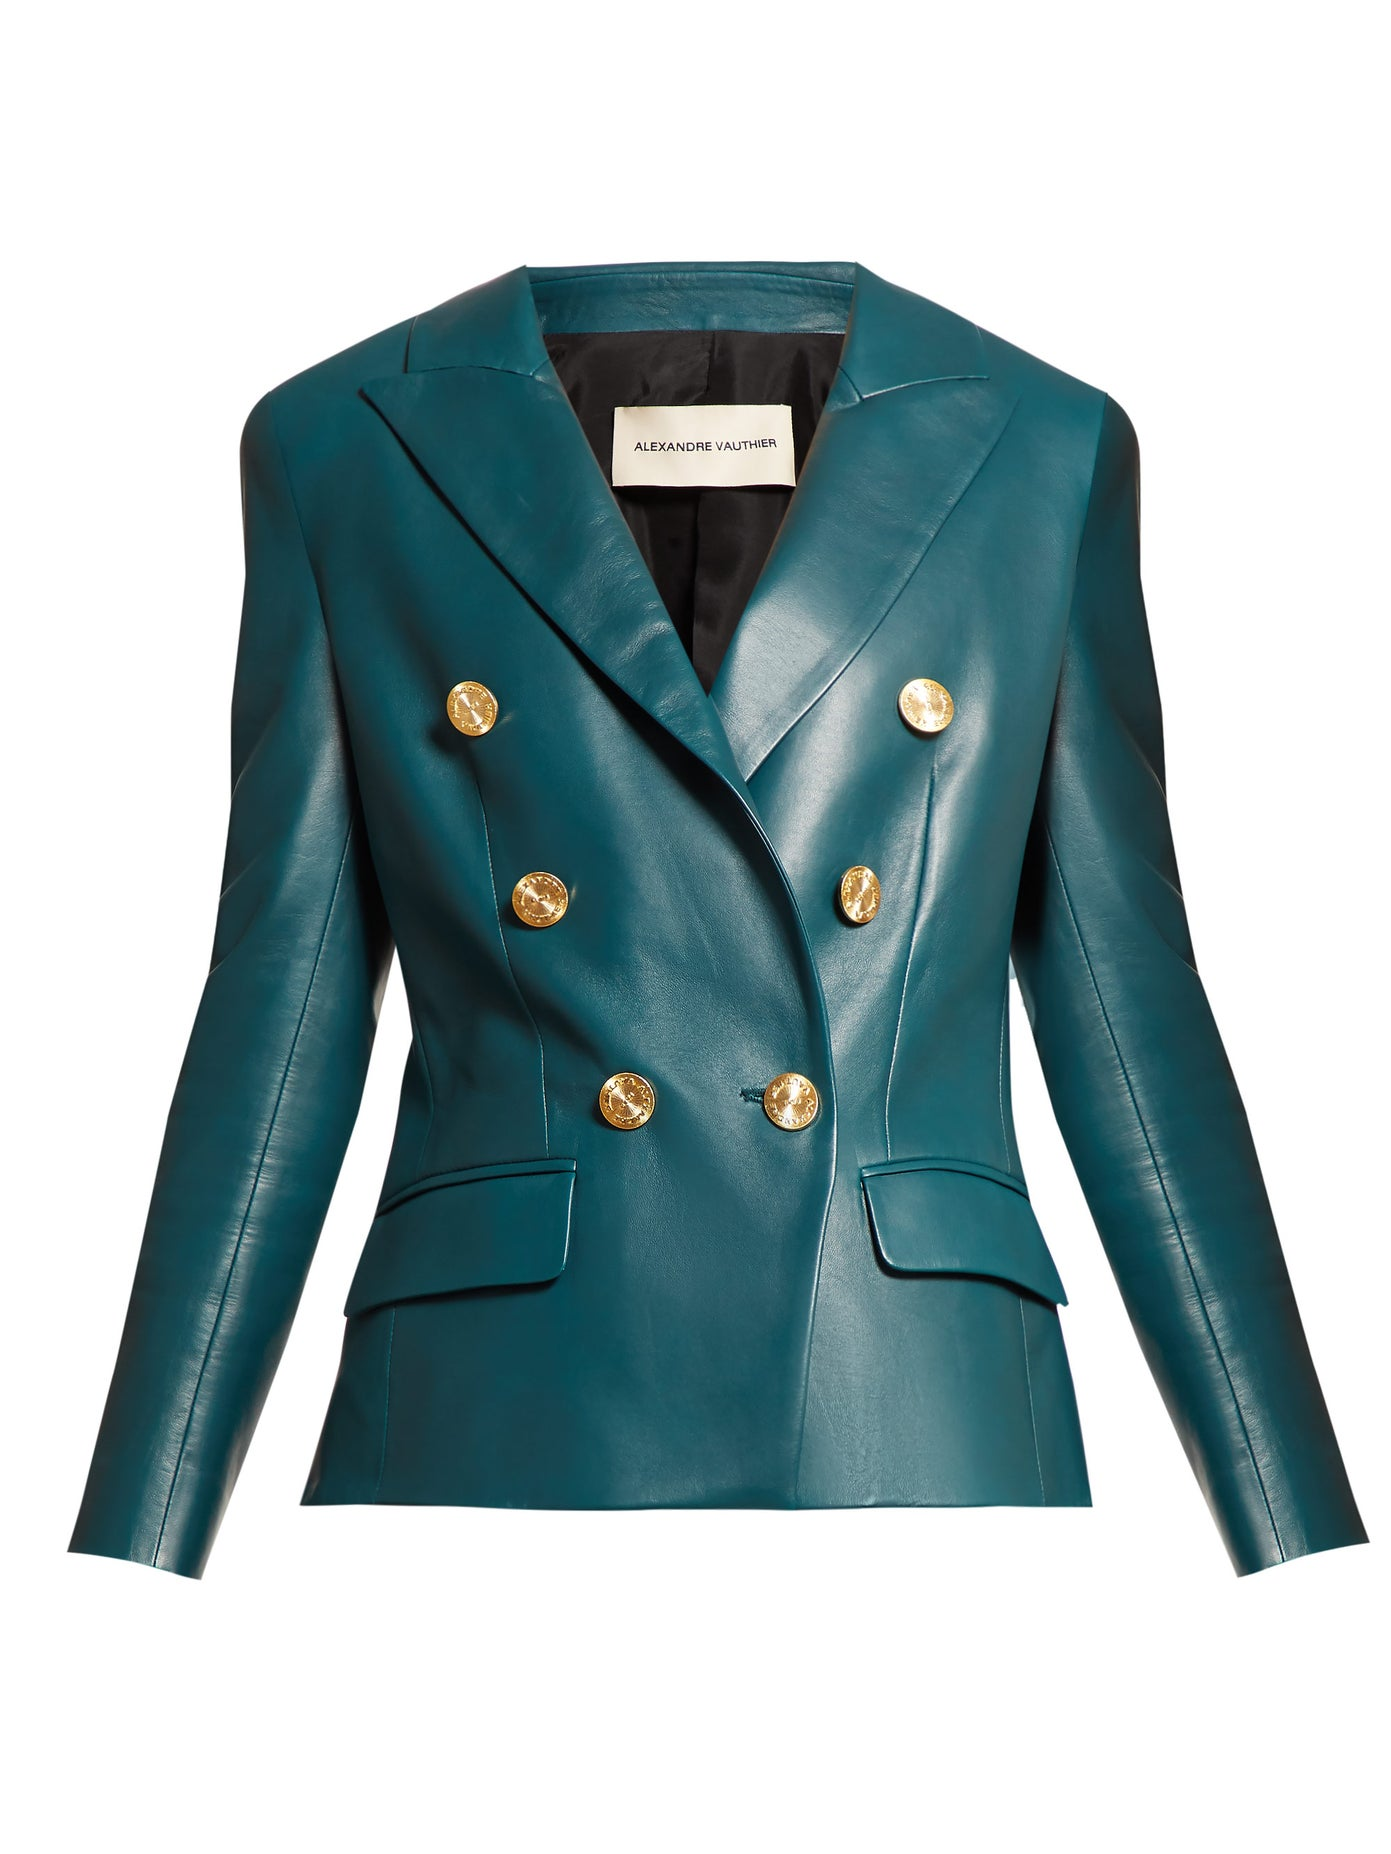 Fall Into Autumn 2019 Colors, forest green, green leather double breasted jacket